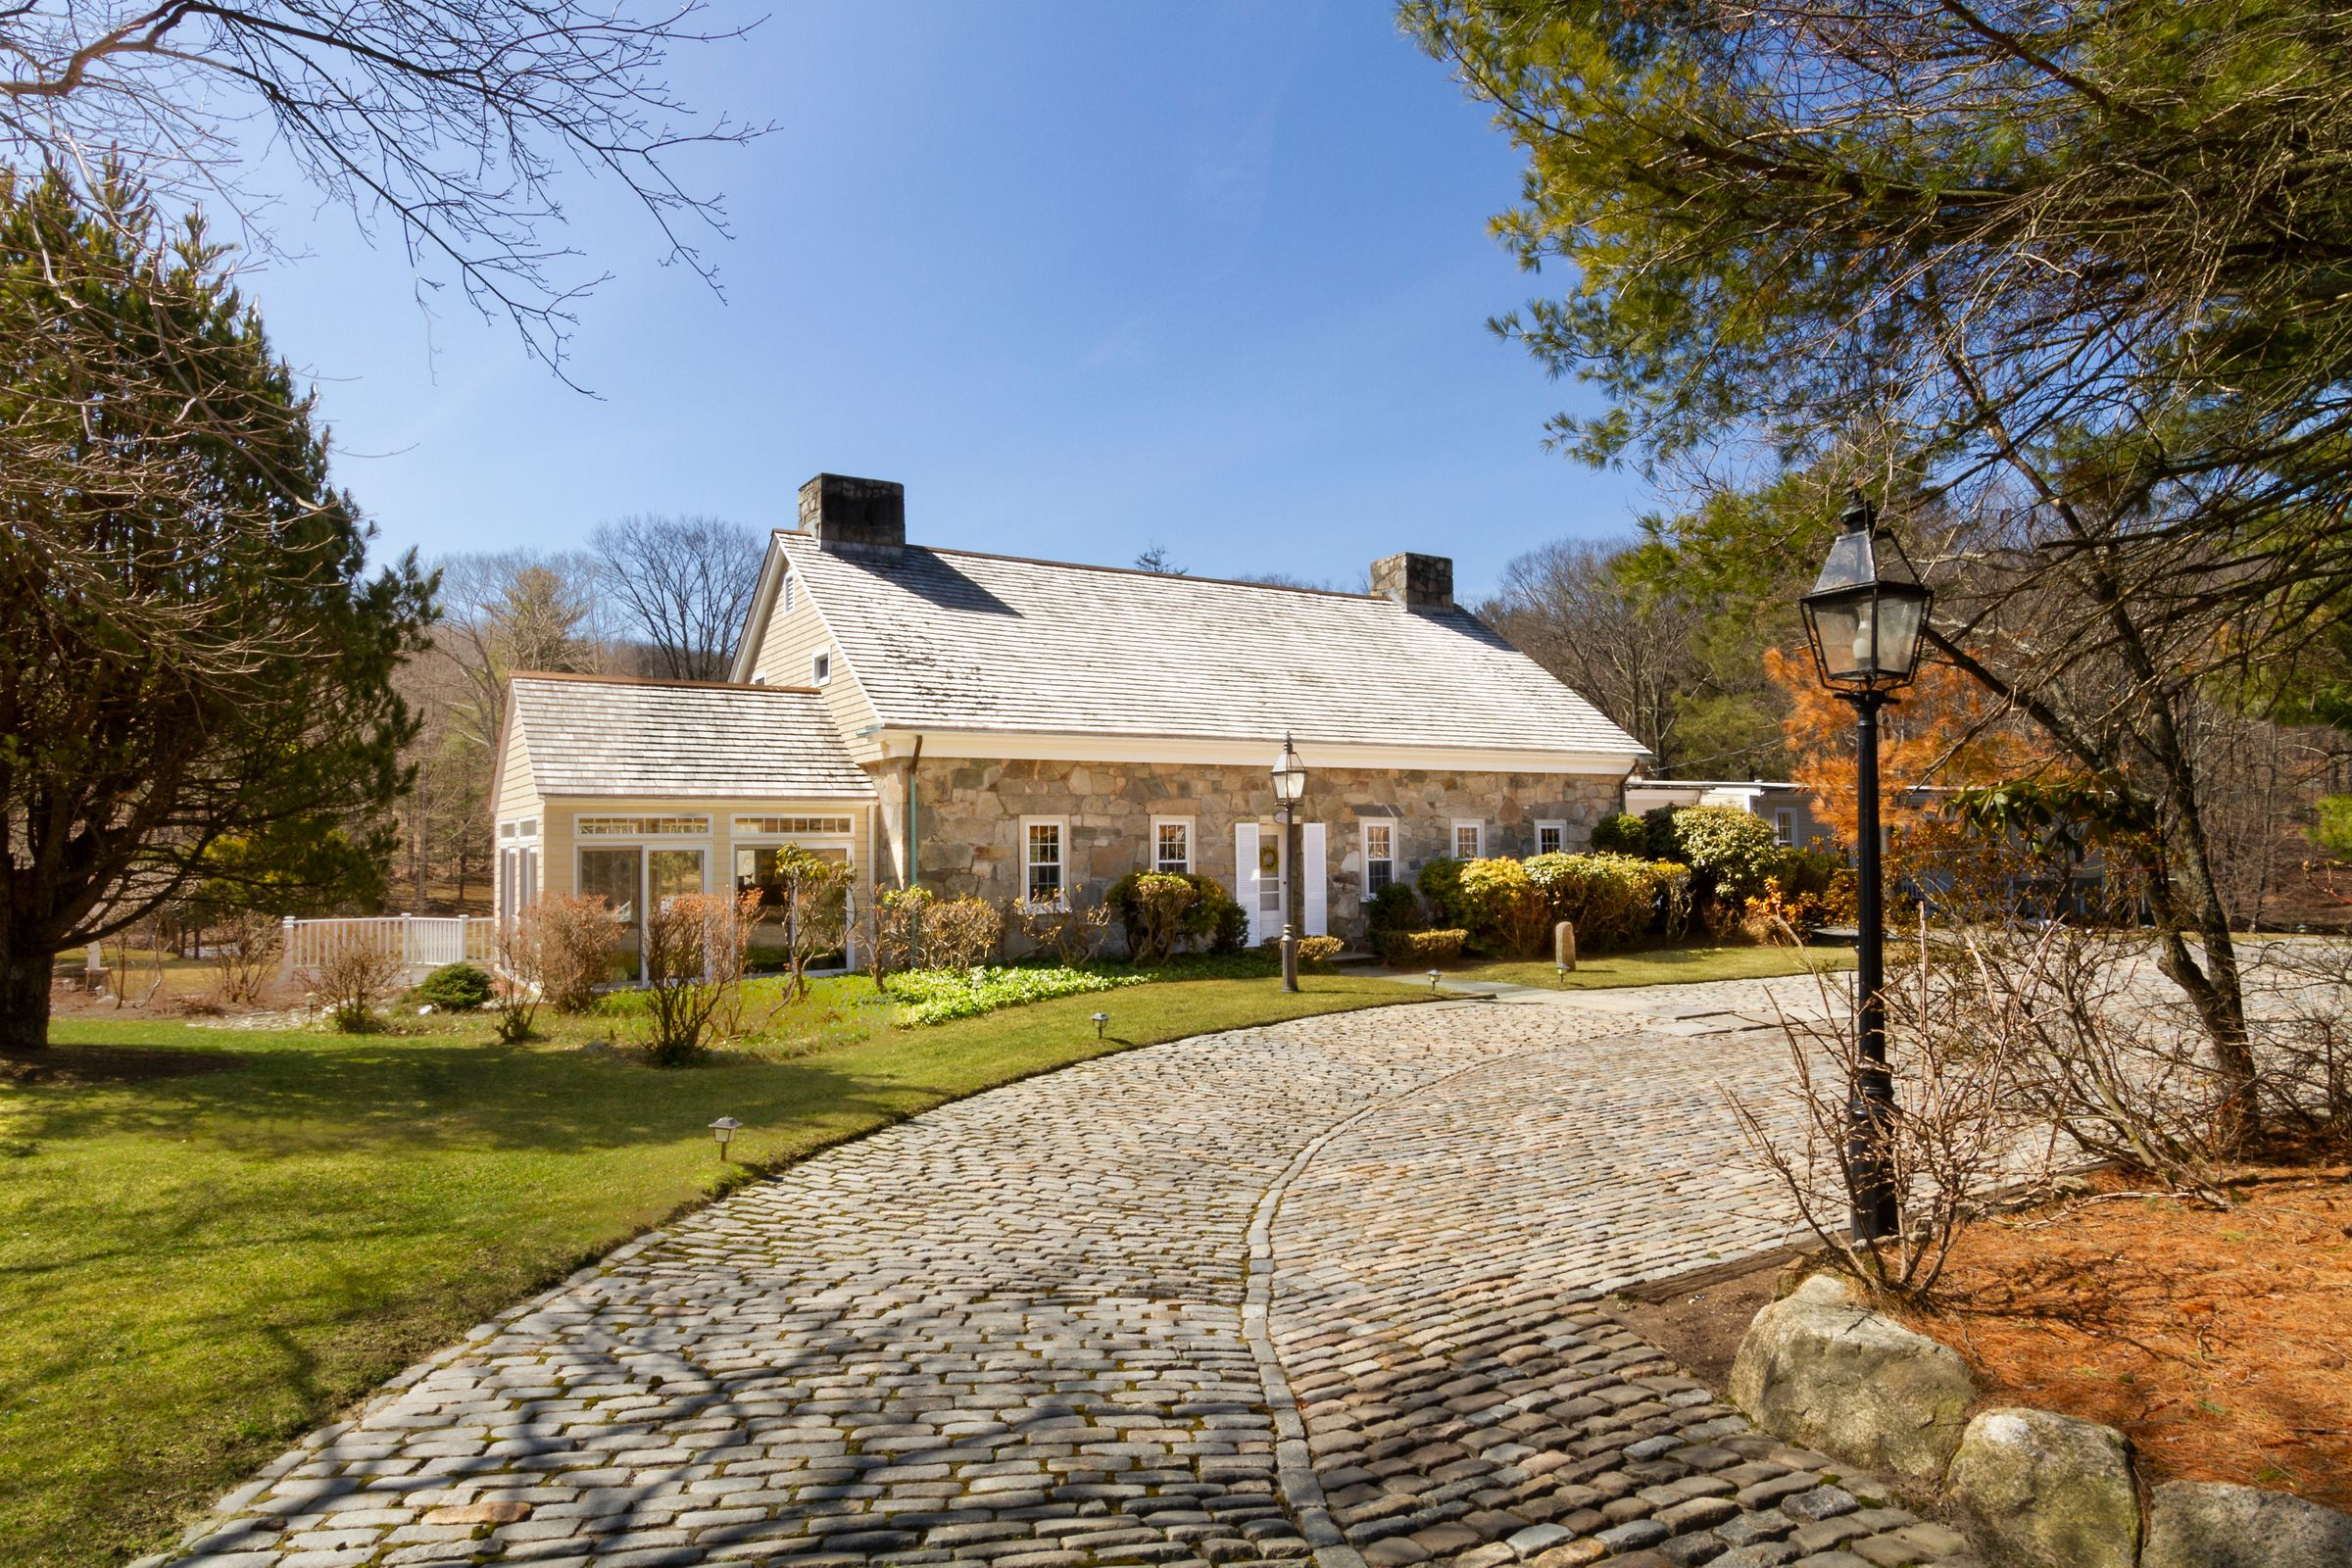 HOUSE LUST: THE MOST EXPENSIVE PROPERTIES IN BLACKSTONE VALLEY